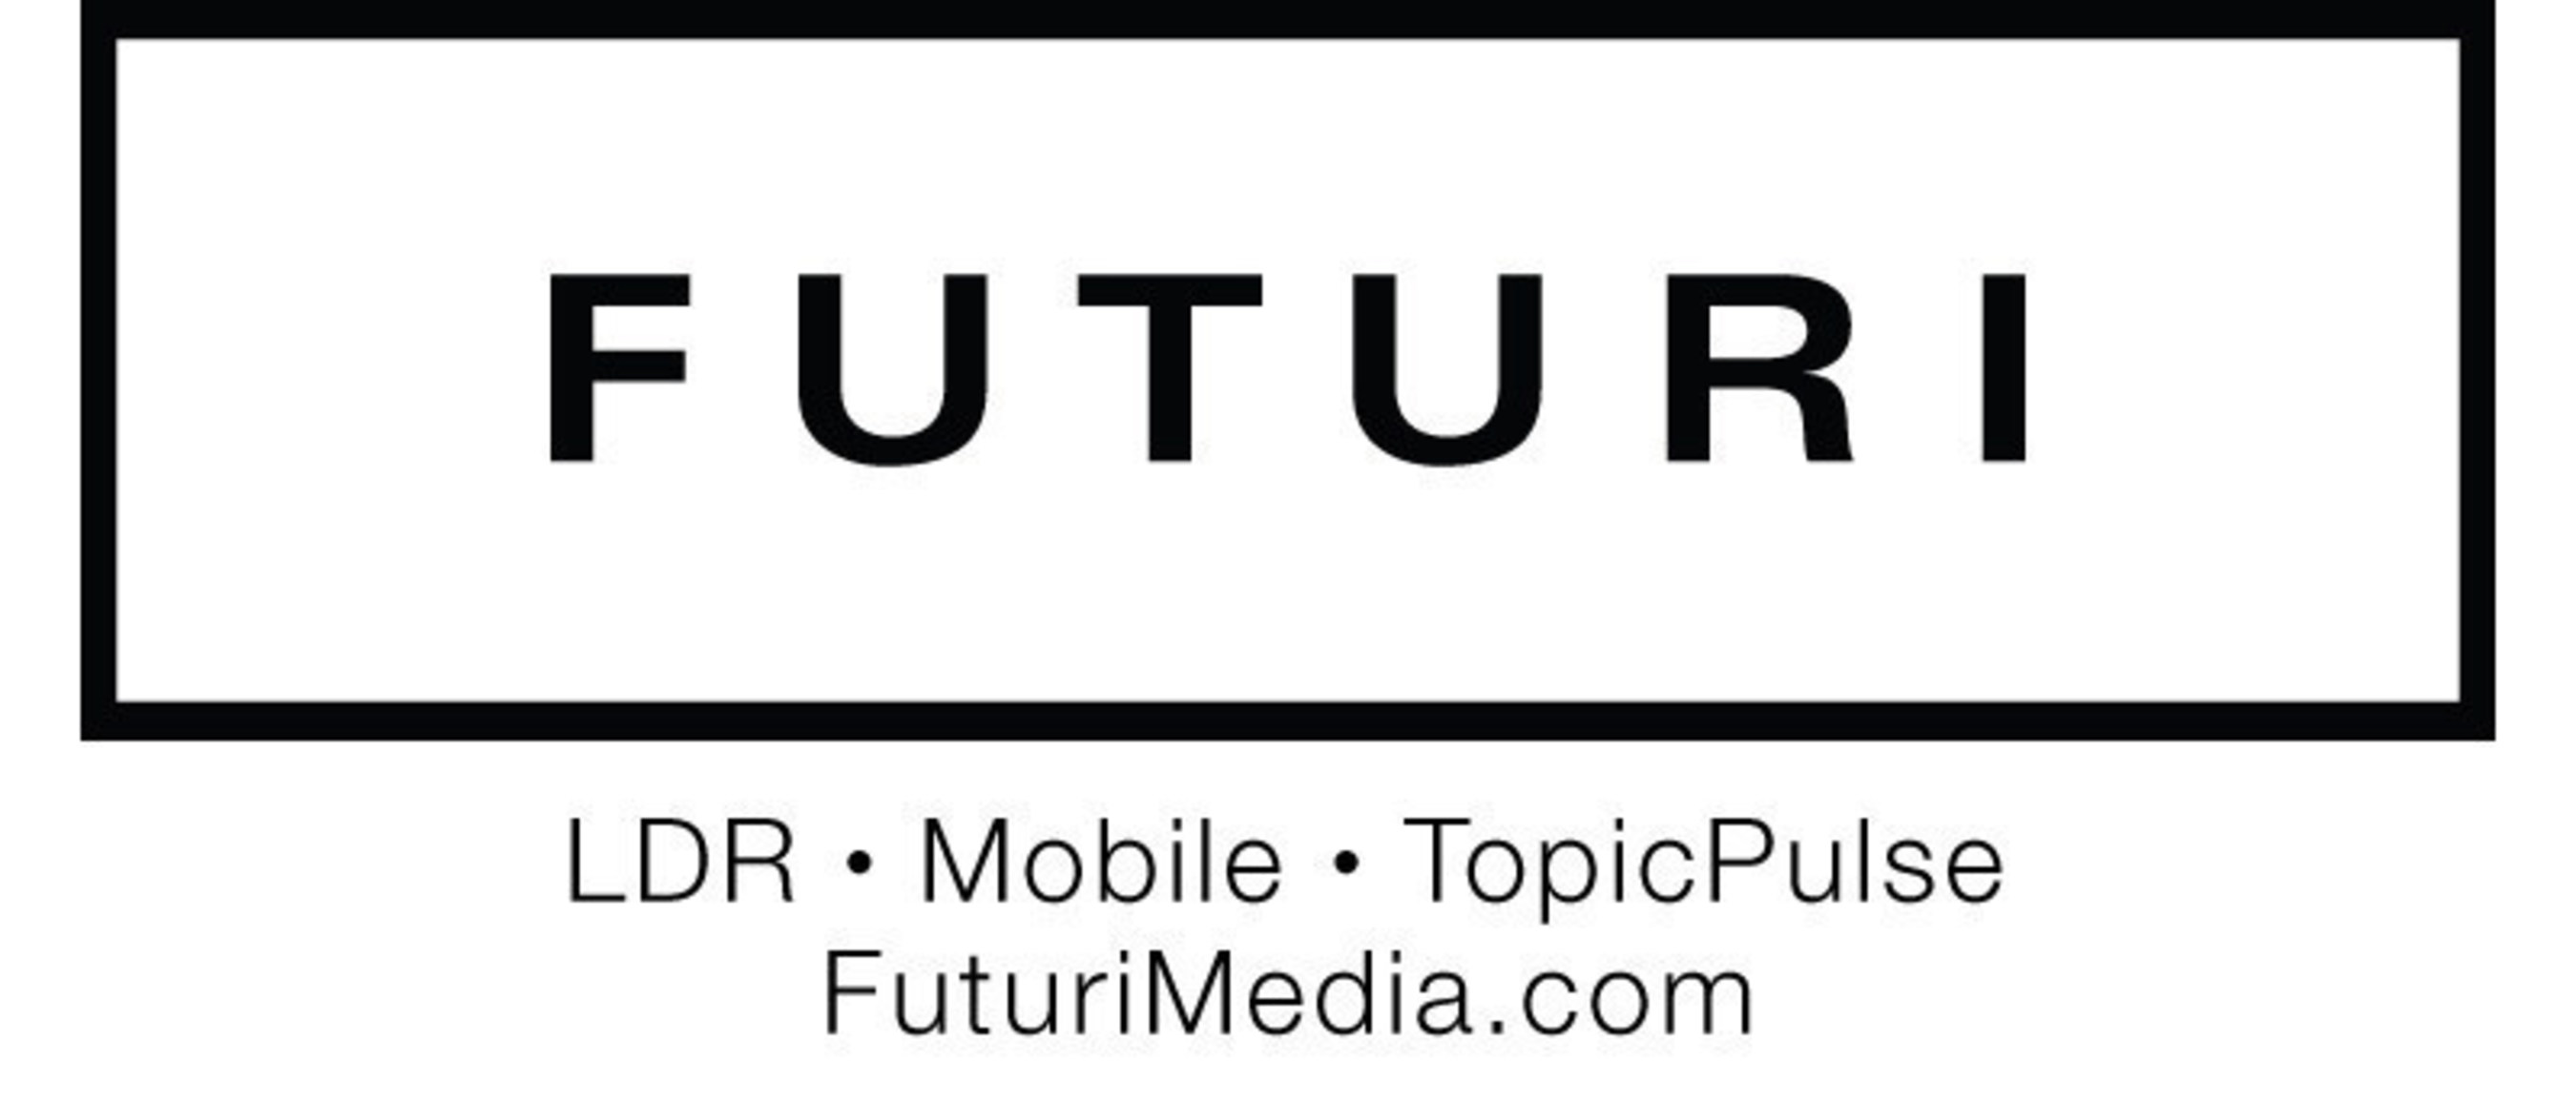 Premiere Networks Renews Long-Term Exclusive Agreement With Futuri Media